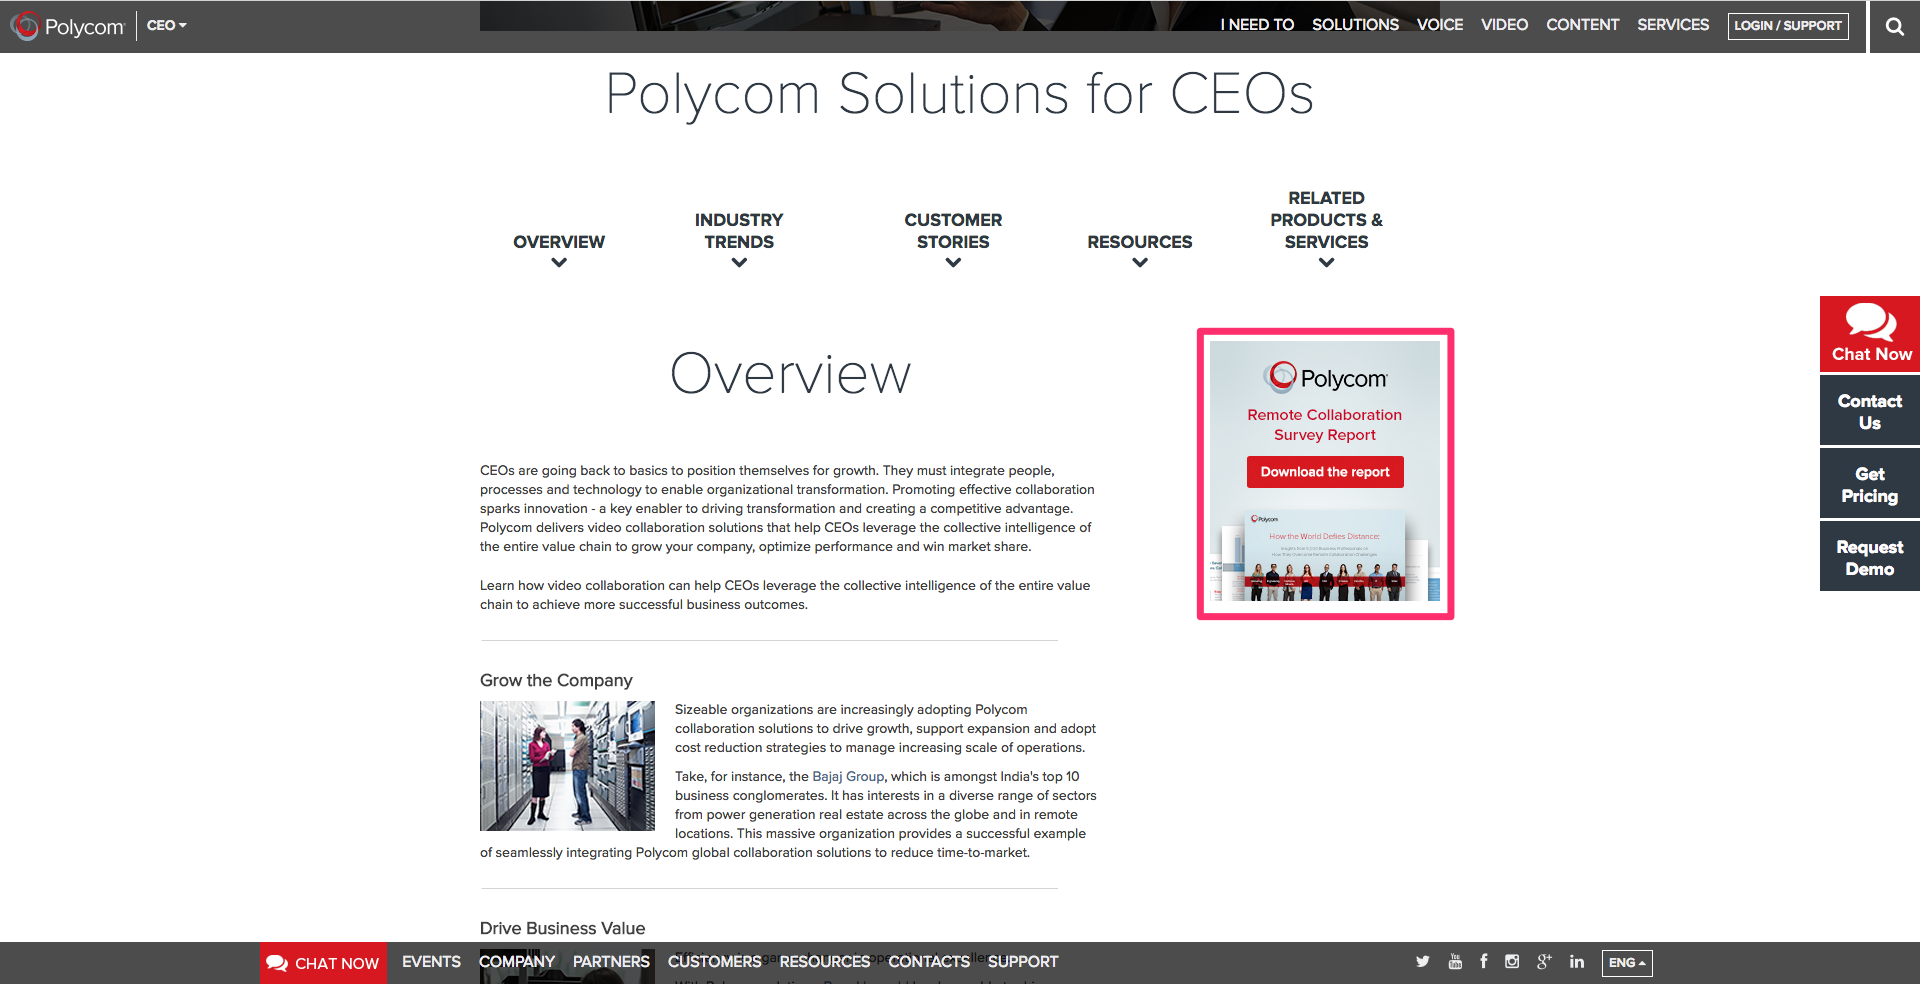 Polycom solutions for CEOs